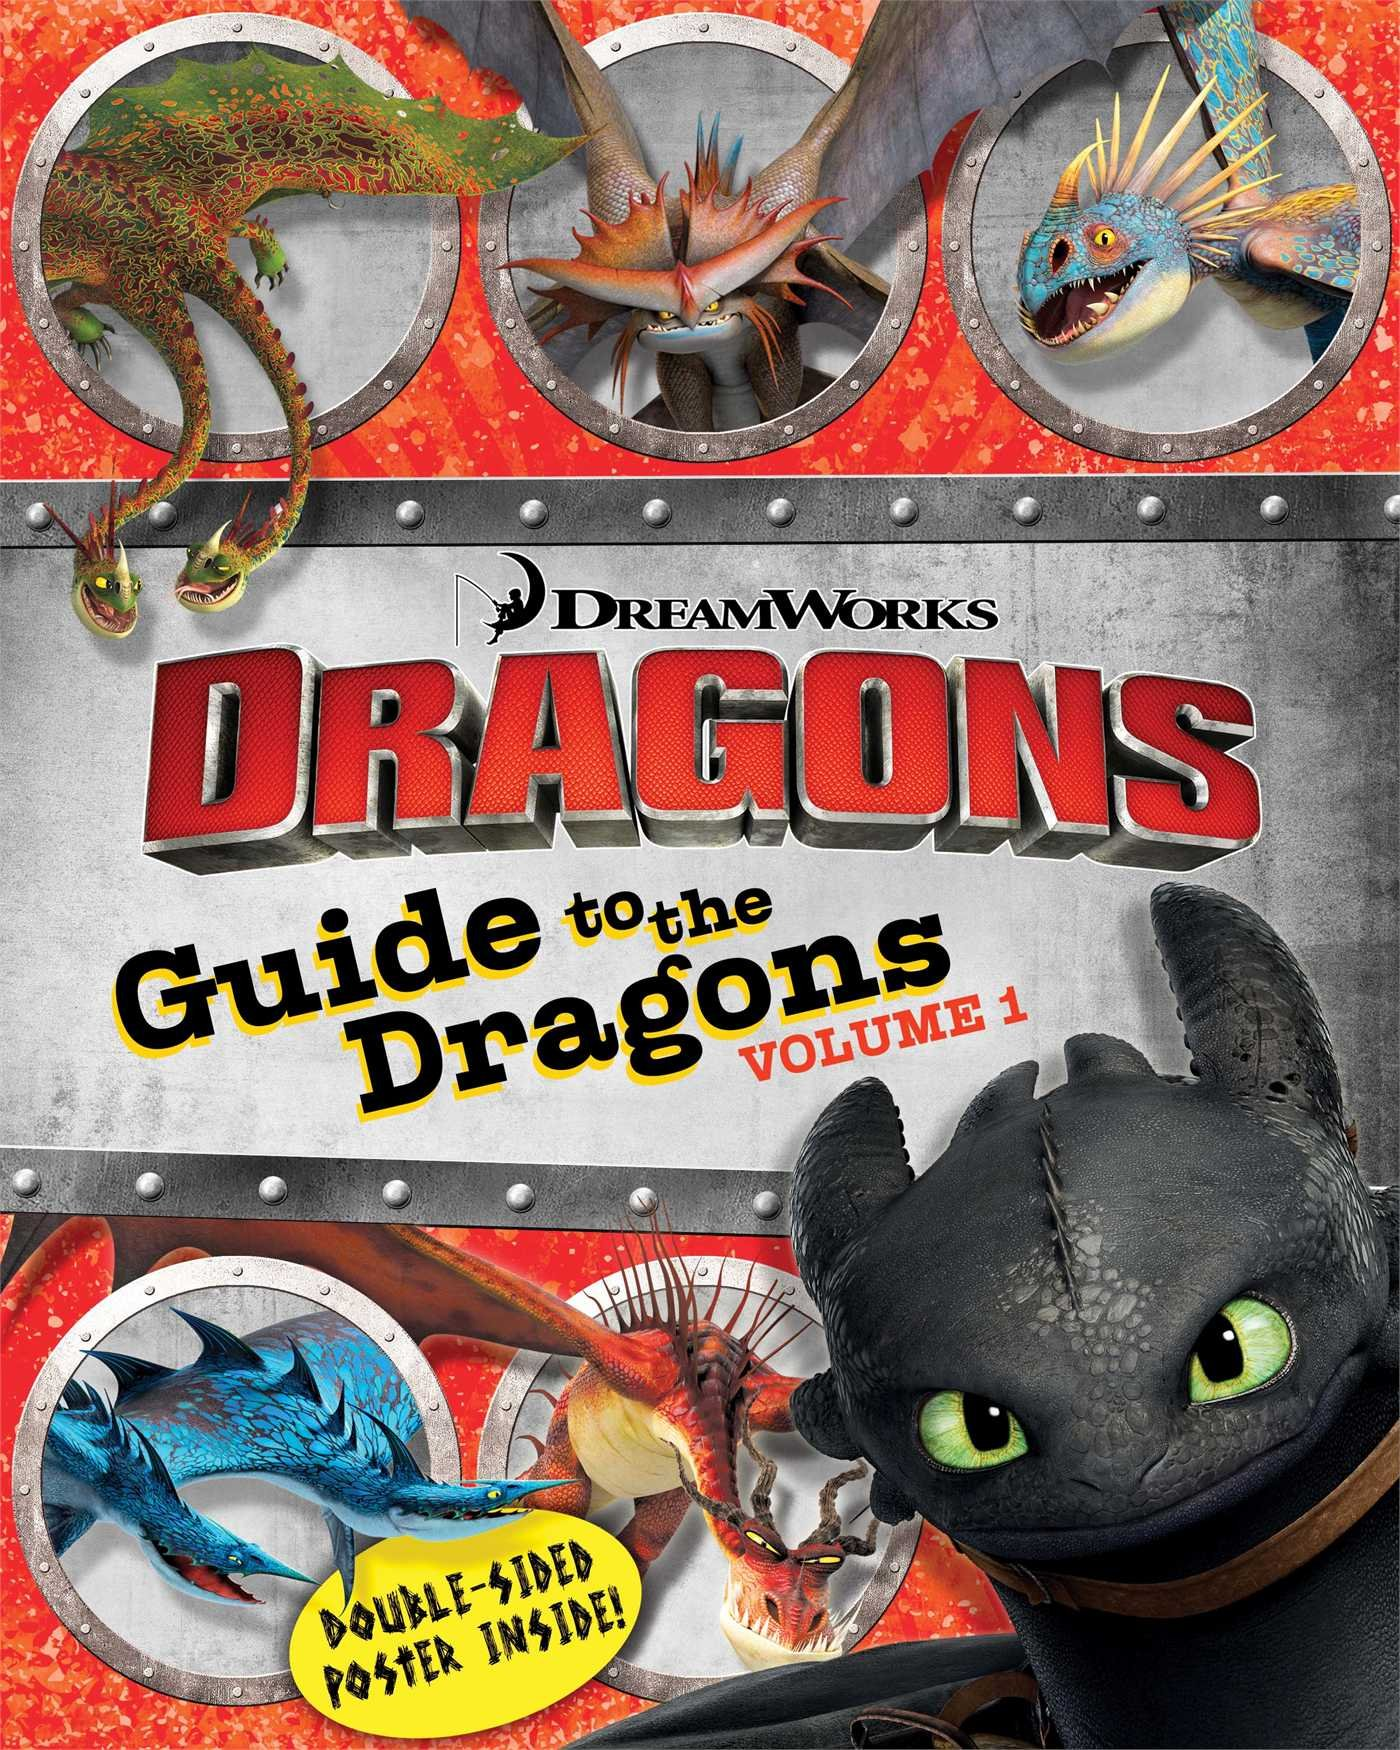 Guide to the dragons volume 1 how to train your dragon wiki guide to the dragons volume 1 how to train your dragon wiki fandom powered by wikia ccuart Choice Image